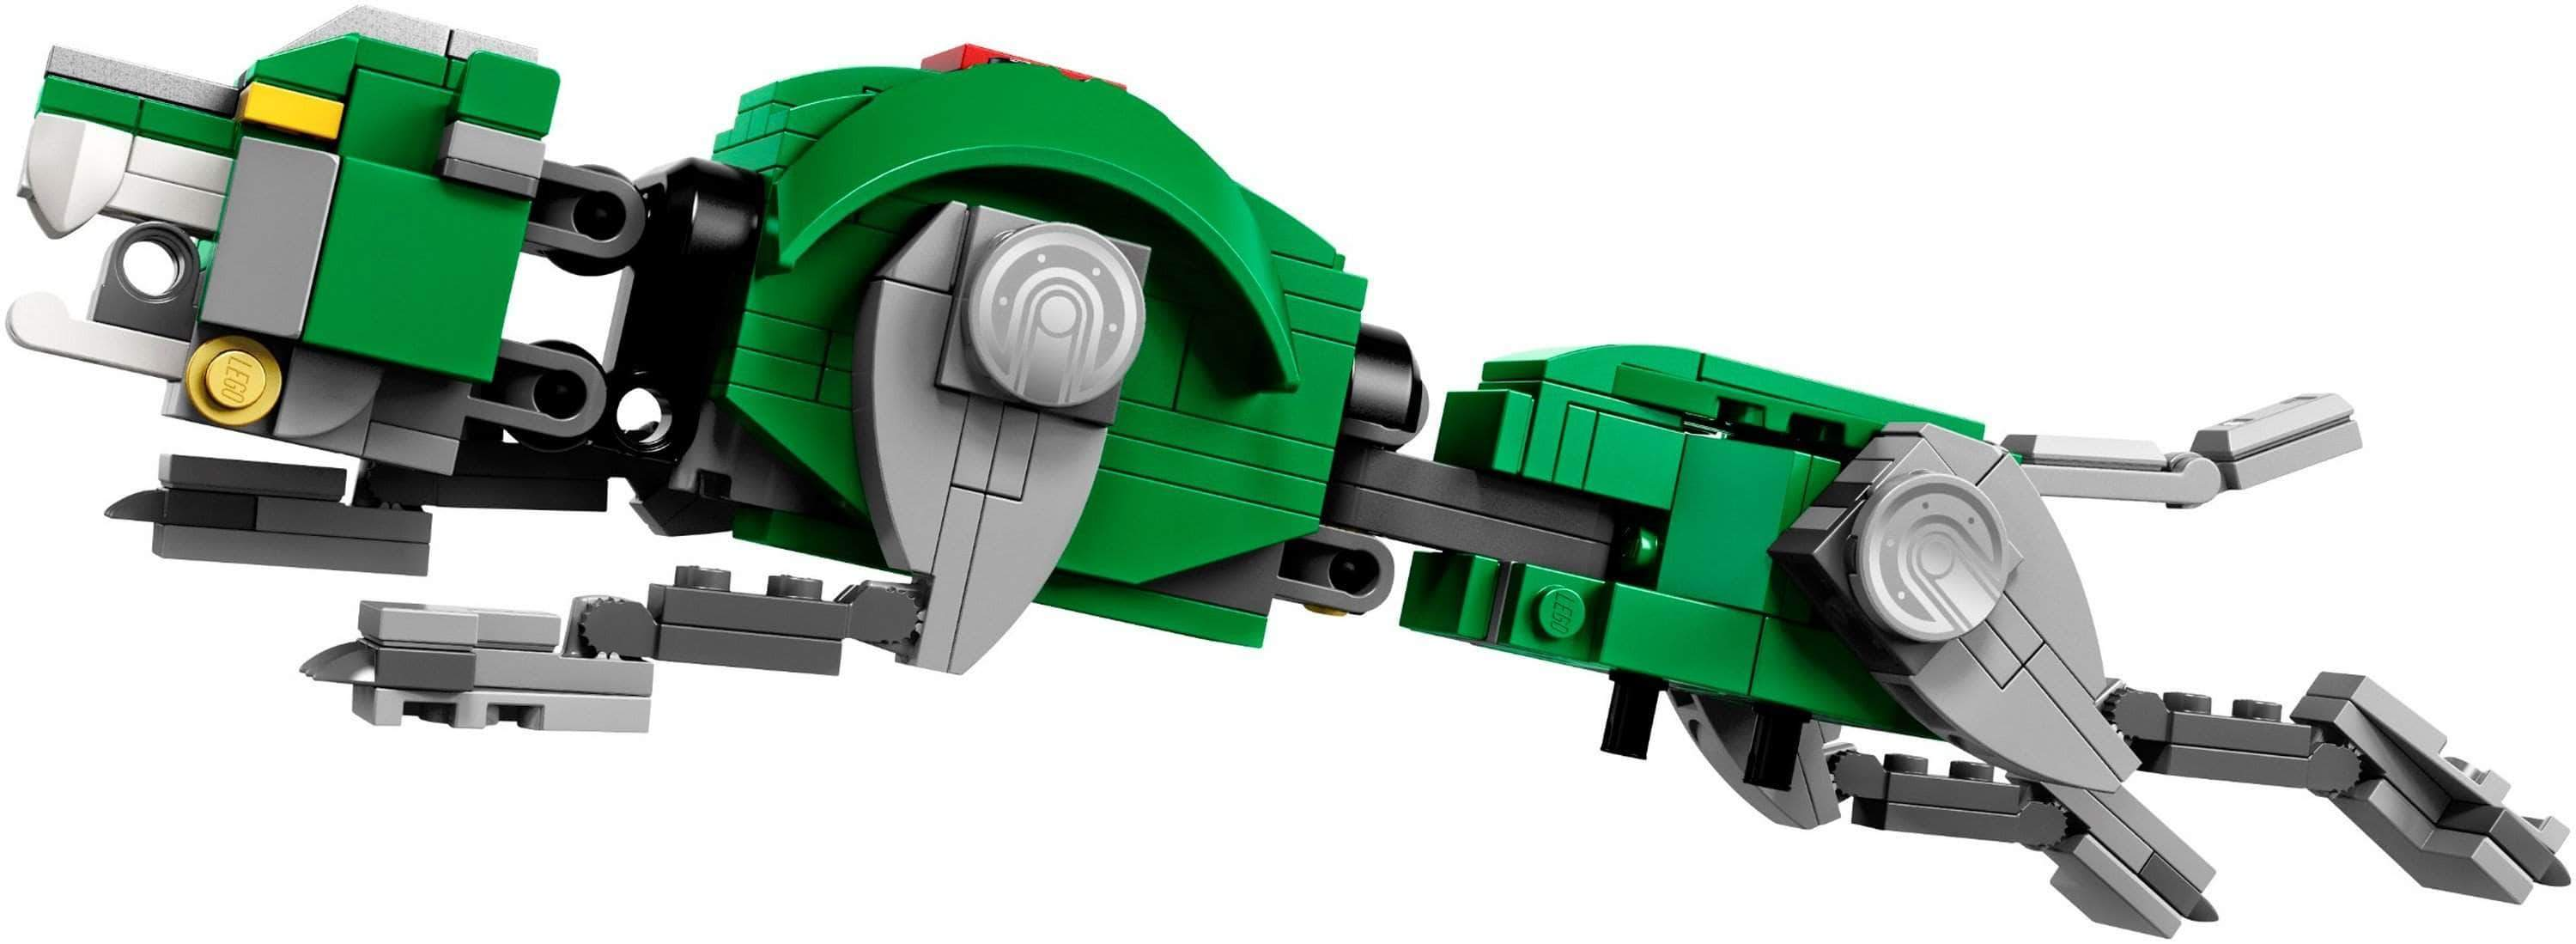 21311 Voltron - LEGO® Bricks World